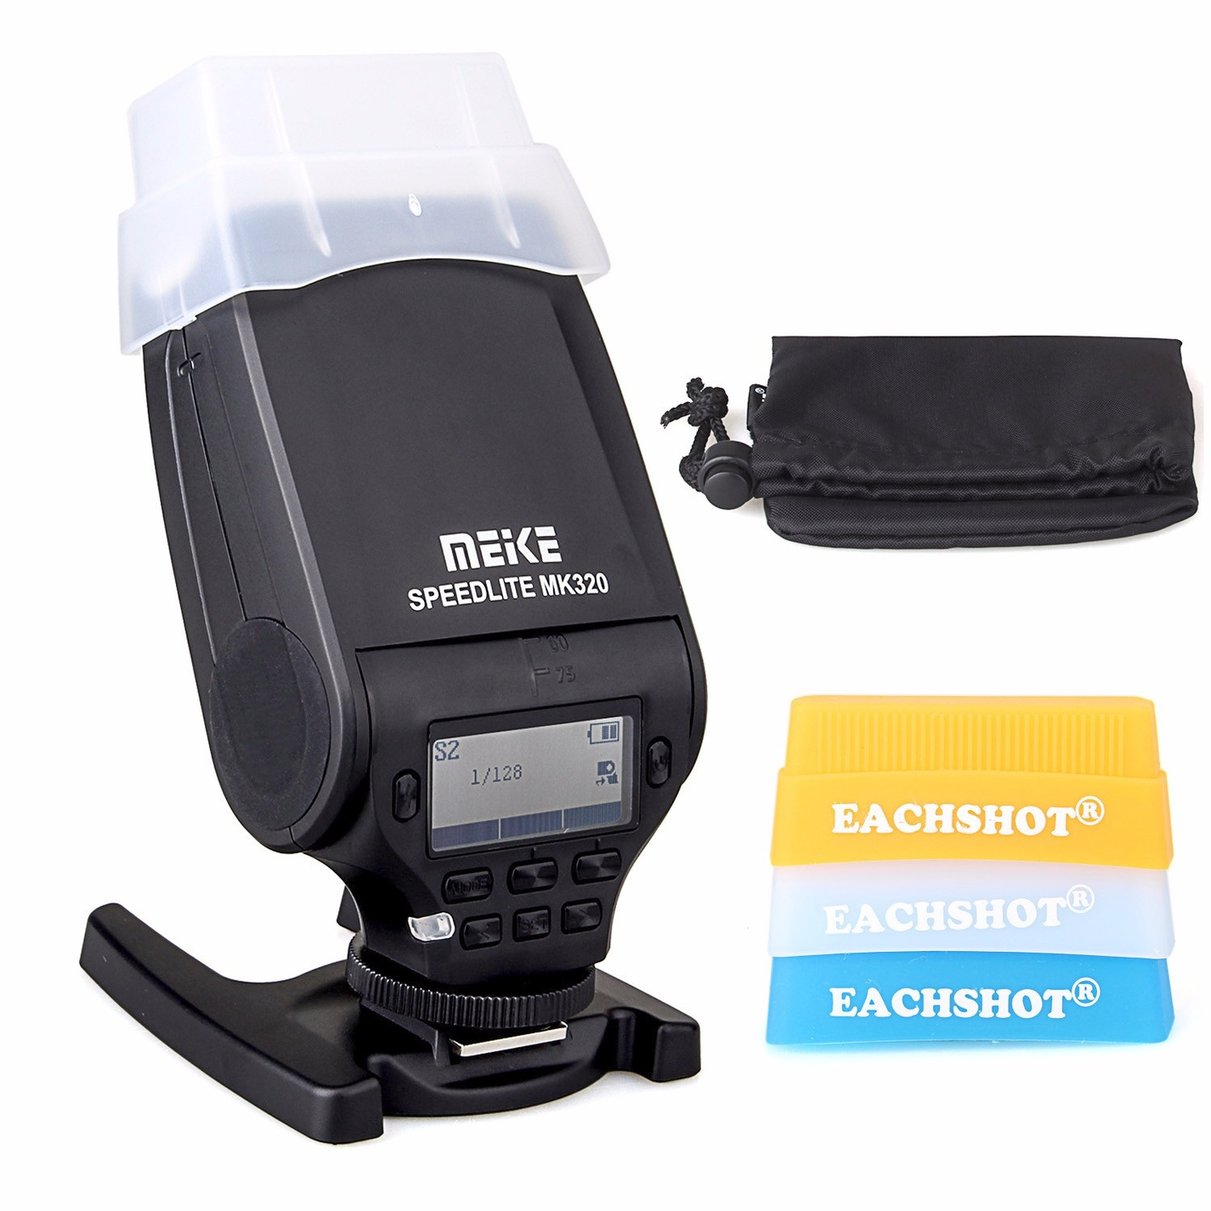 MEIKE MK-320 TTL Flash Speedlite for Olympus OM-D E-M5 II E-M10 E-M1 PEN E-PL7 E-P5 E-PL6 E-PL5 E-PM2 E-P3 E-PL3 E-PM1 E-PL2 43mm parnis power reserve automatic self wind mechanical movement men s watch black dial pvd case mechanical watches zdgd101a